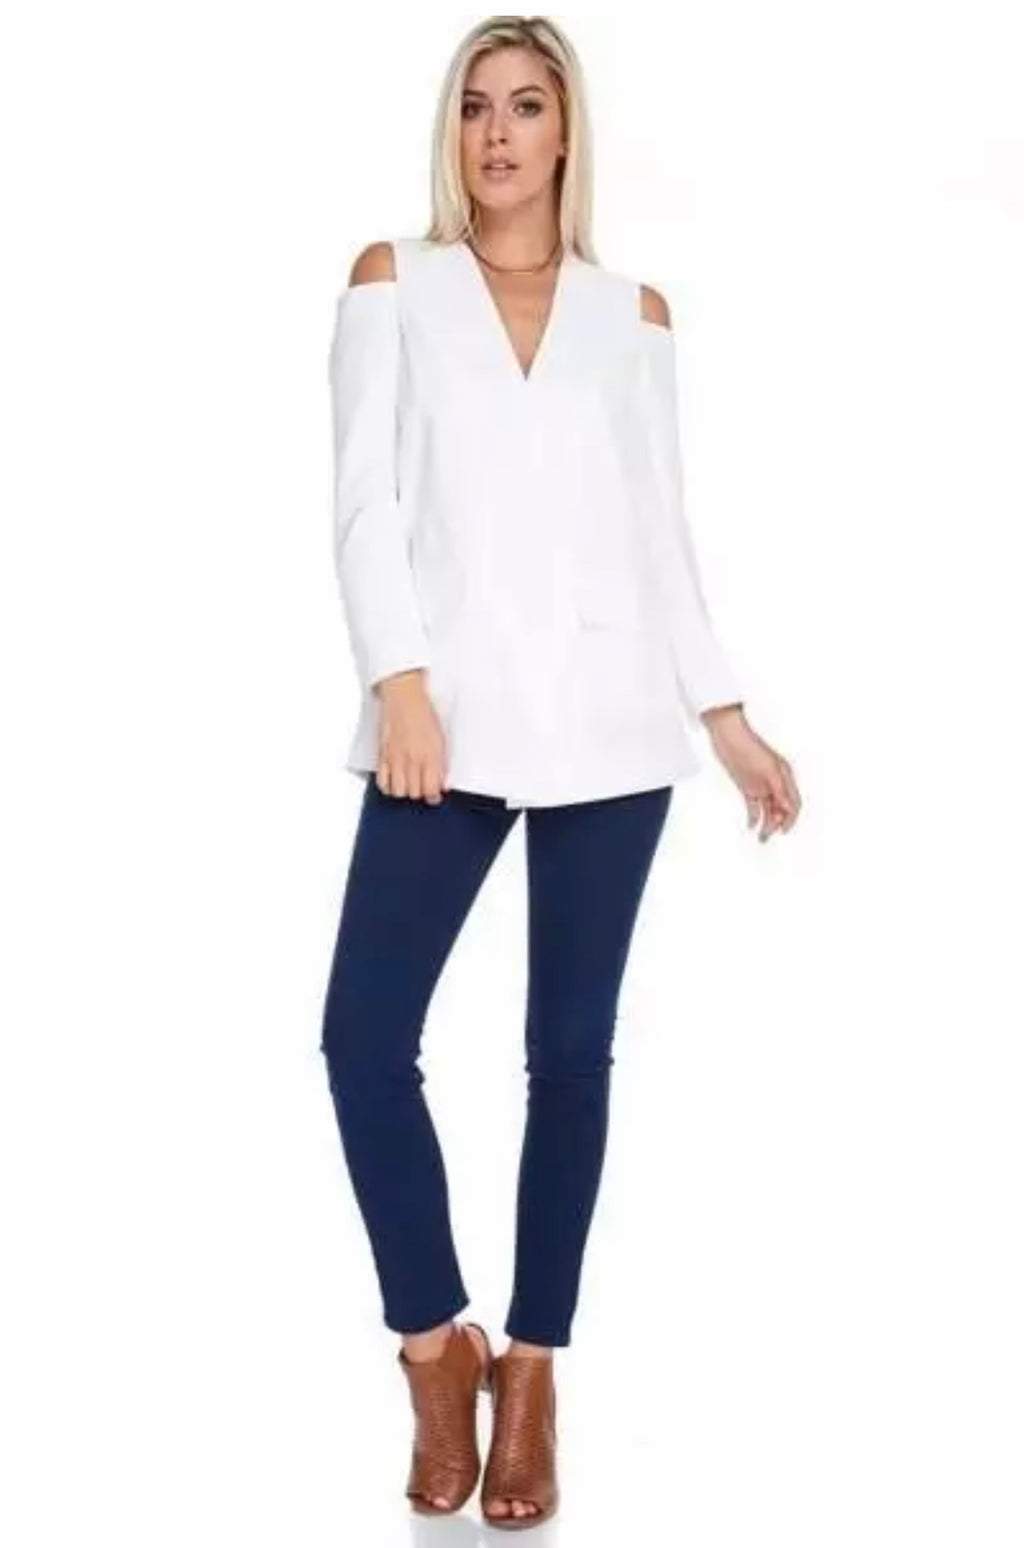 Cold Shoulder White Power Blazer - KATANA FASHION BOUTIQUE